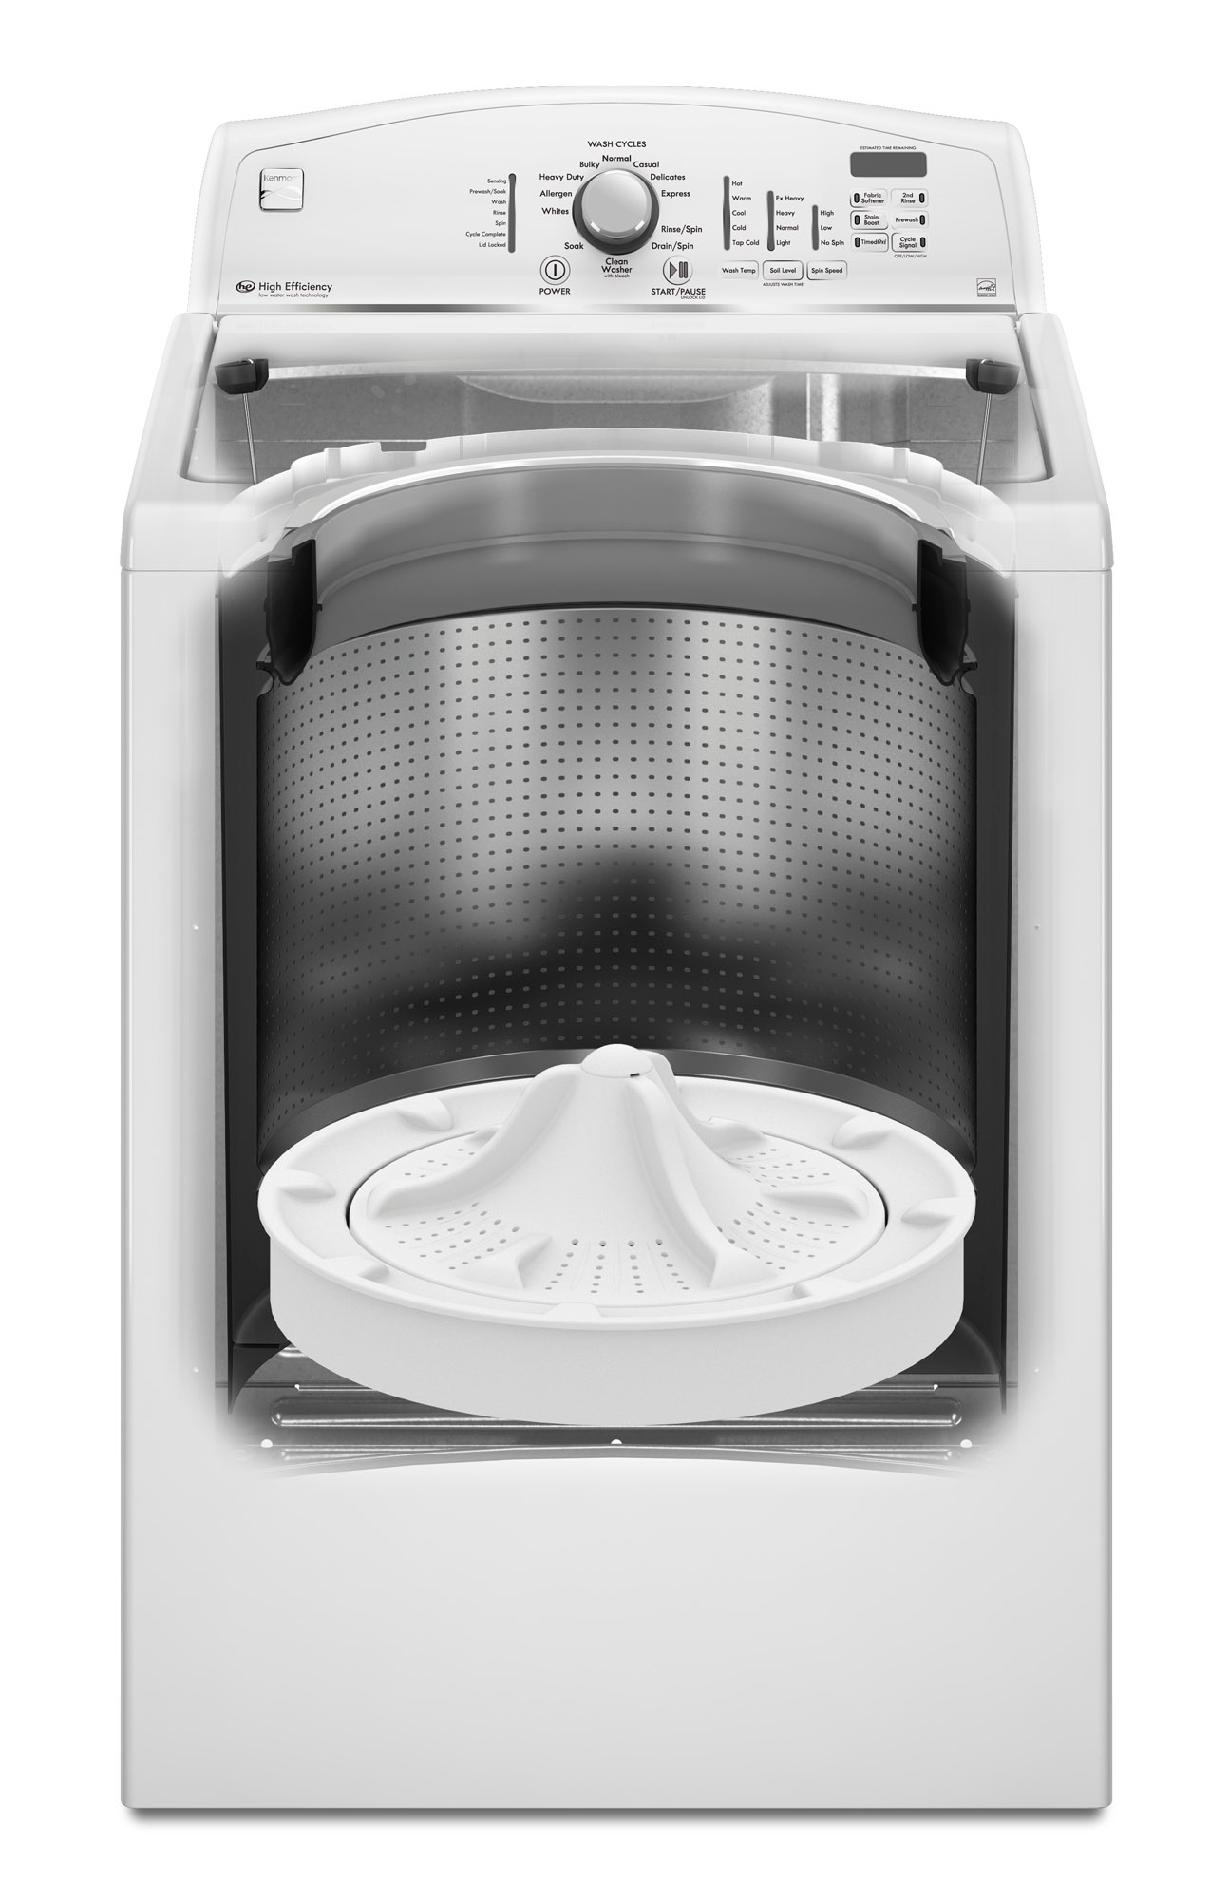 Kenmore 28002 3.6 cu. ft. High-Efficiency Top-Load Washer - White